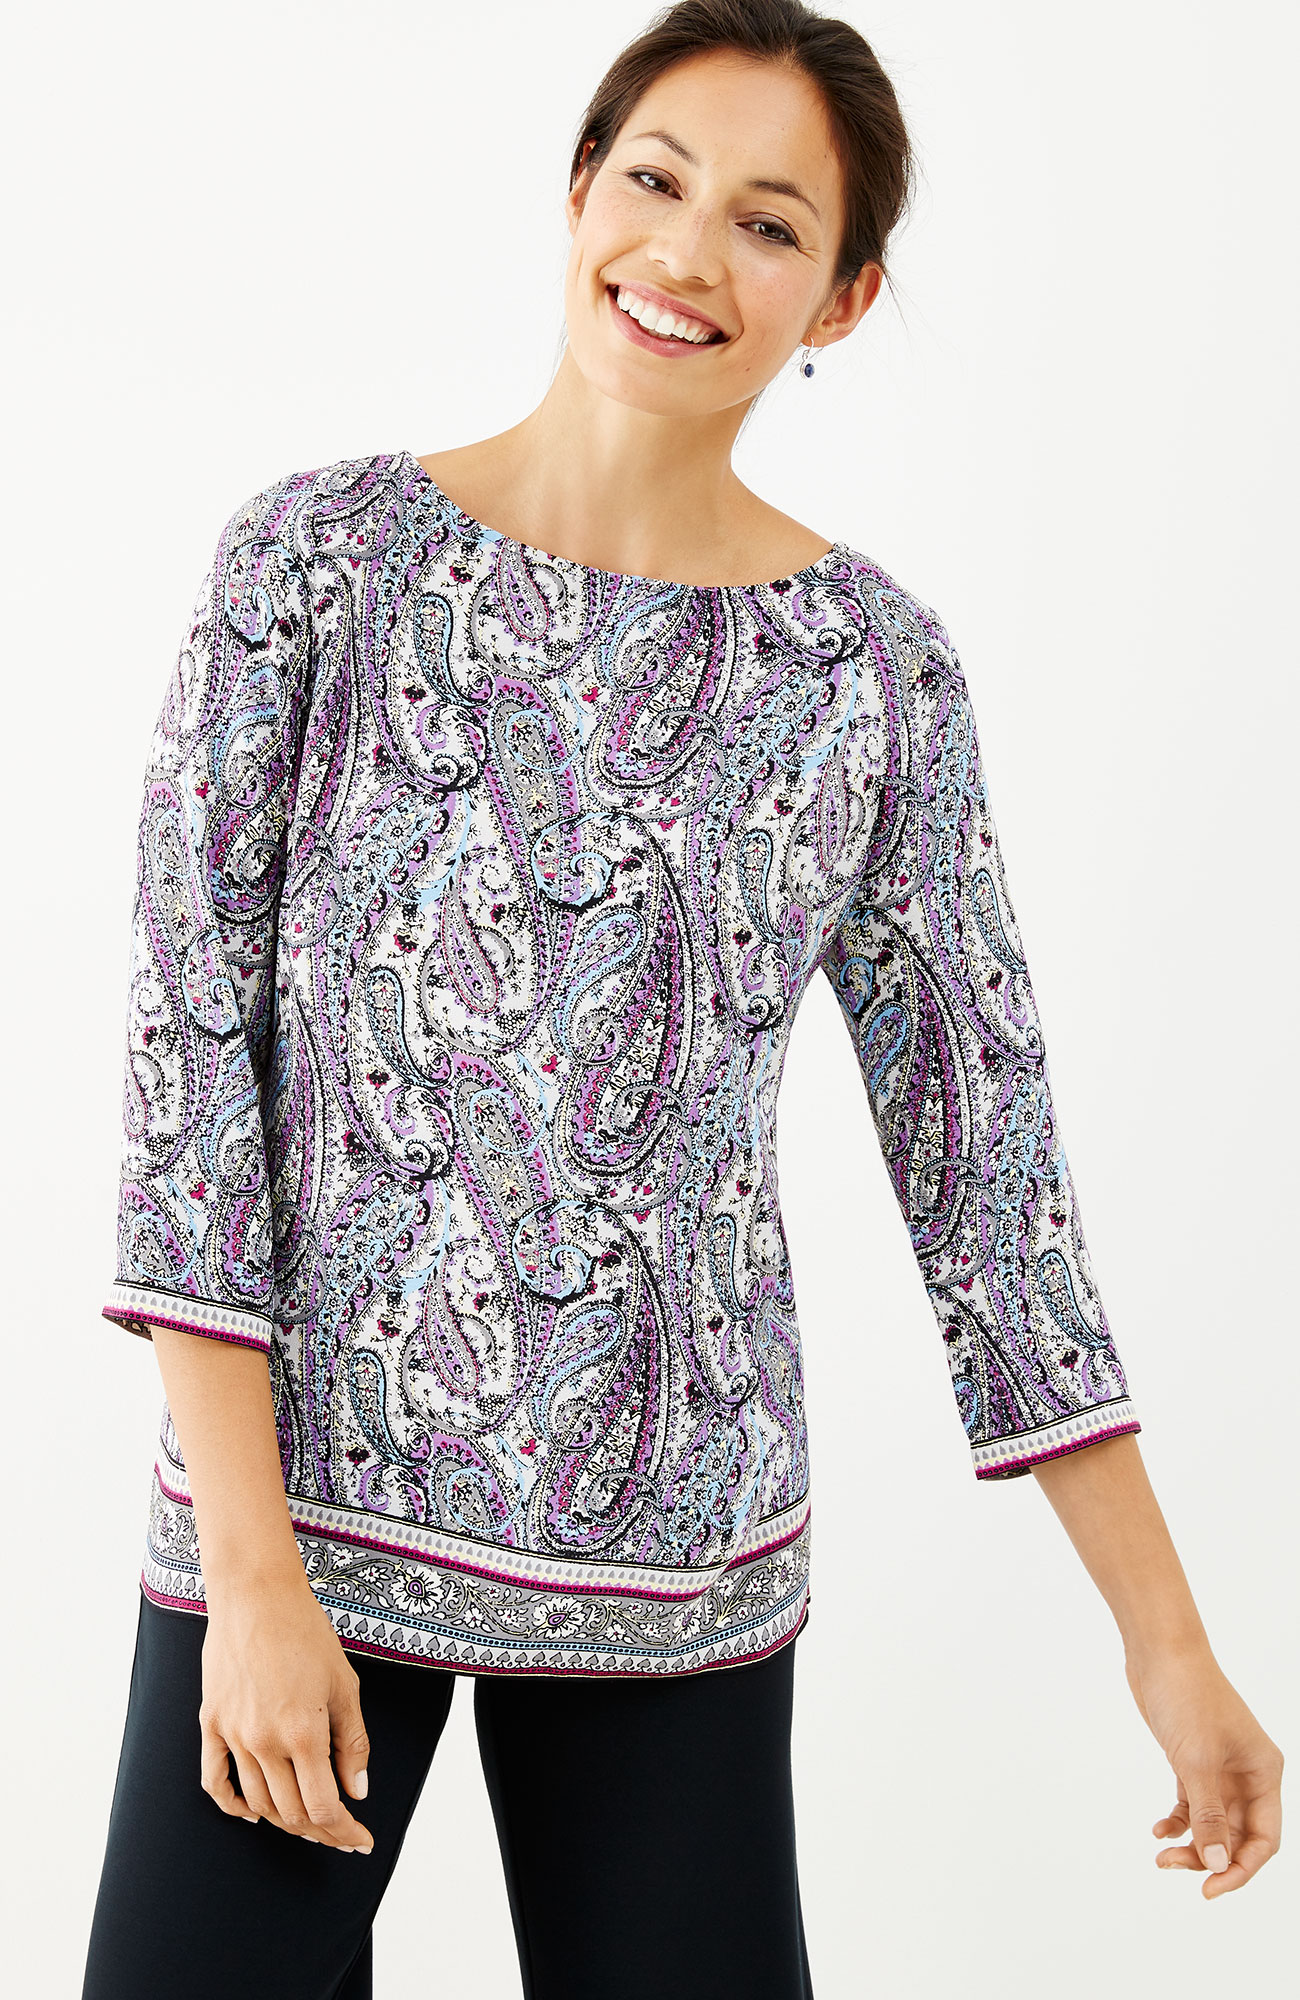 wrapped-back paisley top